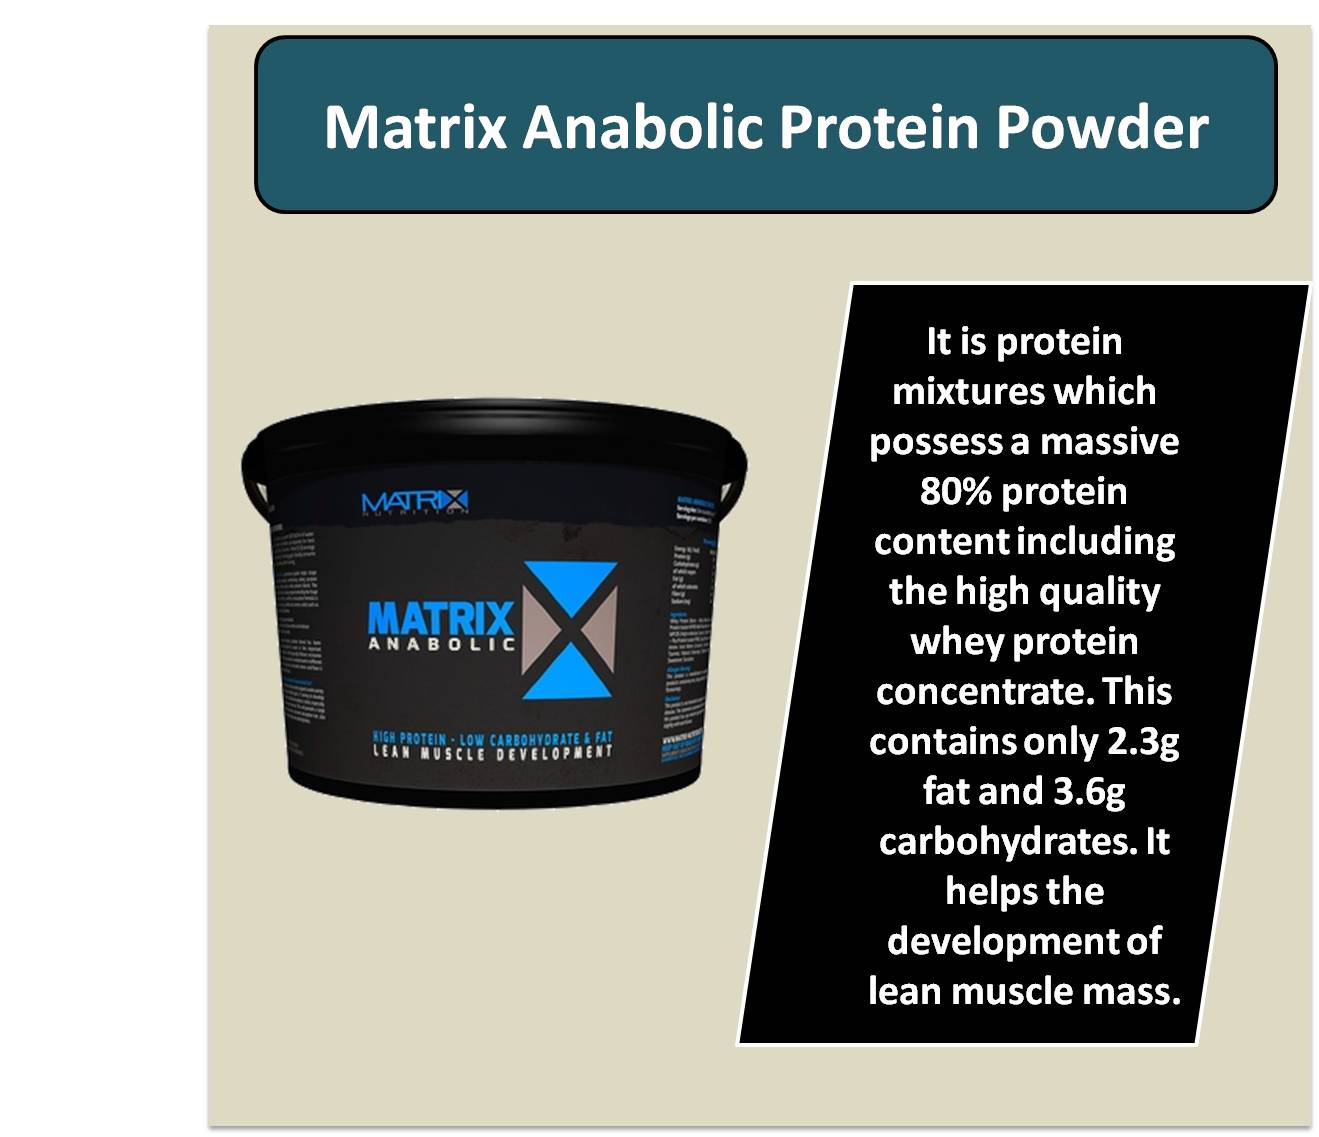 Matrix Anabolic Protein Powder